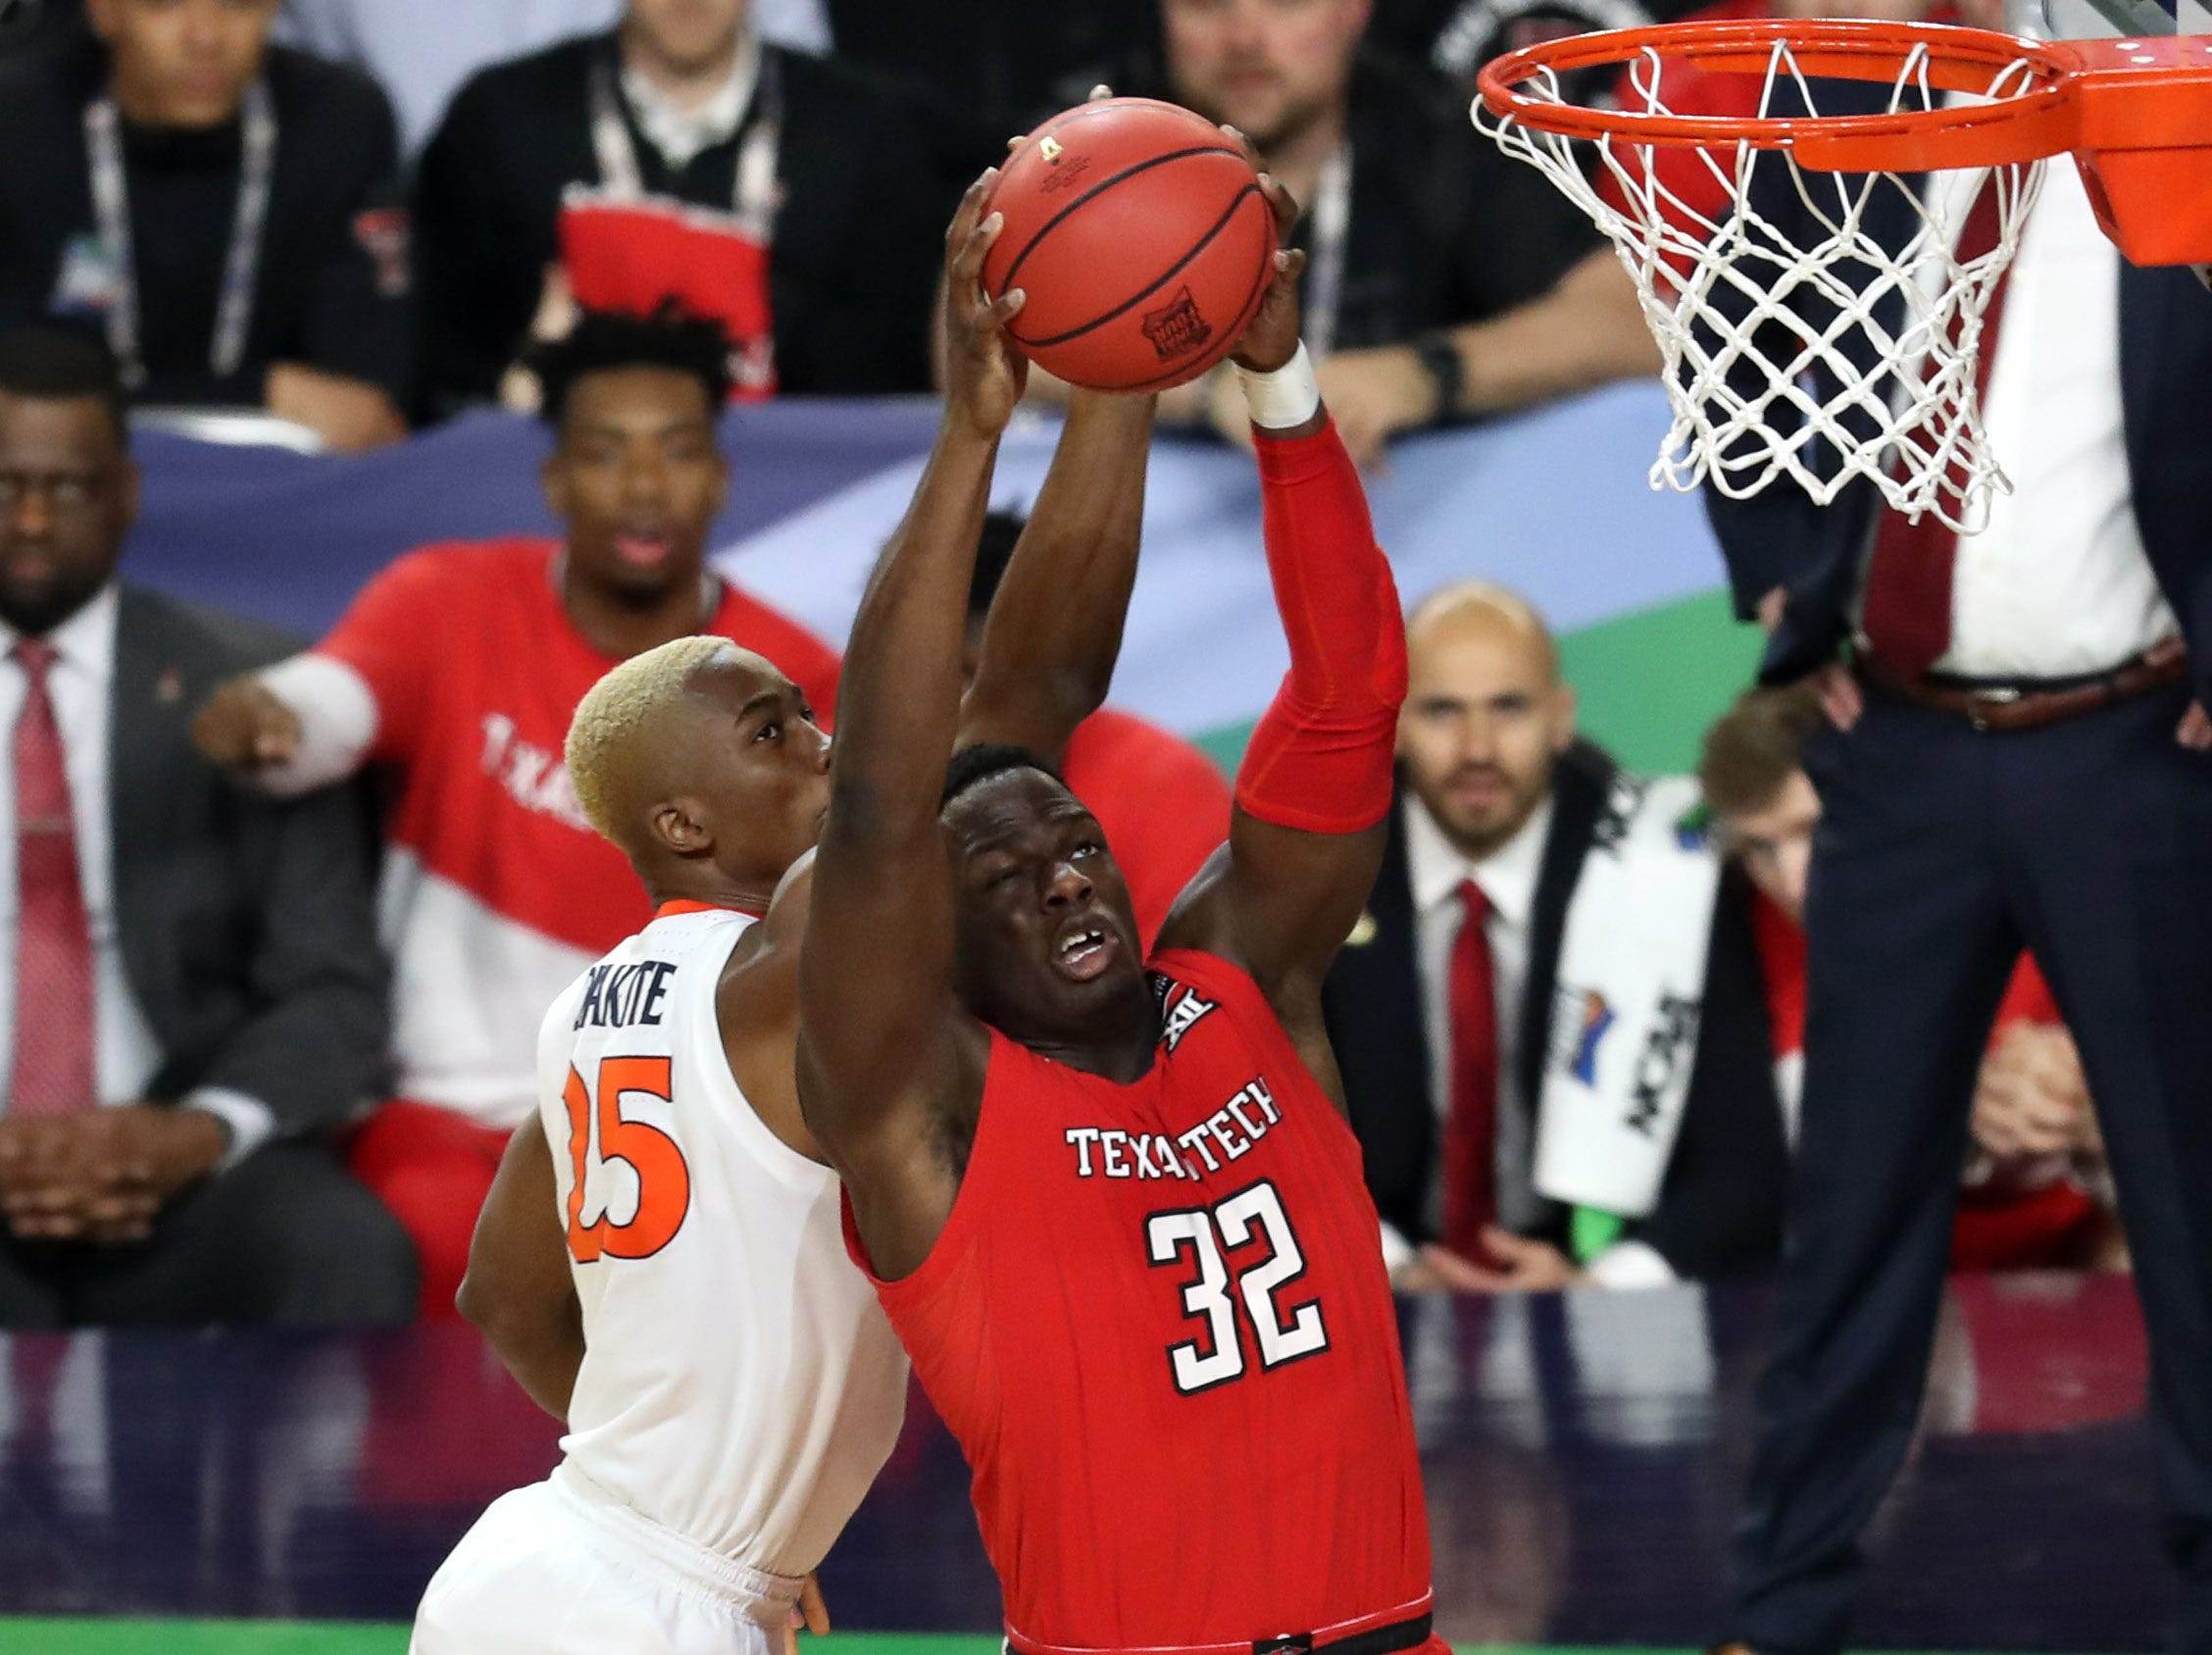 Apr 8, 2019; Minneapolis, MN, USA; Virginia Cavaliers forward Mamadi Diakite (25) blocks the shot of Texas Tech Red Raiders center Norense Odiase (32) during the first half in the championship game of the 2019 men's Final Four at US Bank Stadium. Mandatory Credit: Brace Hemmelgarn-USA TODAY Sports